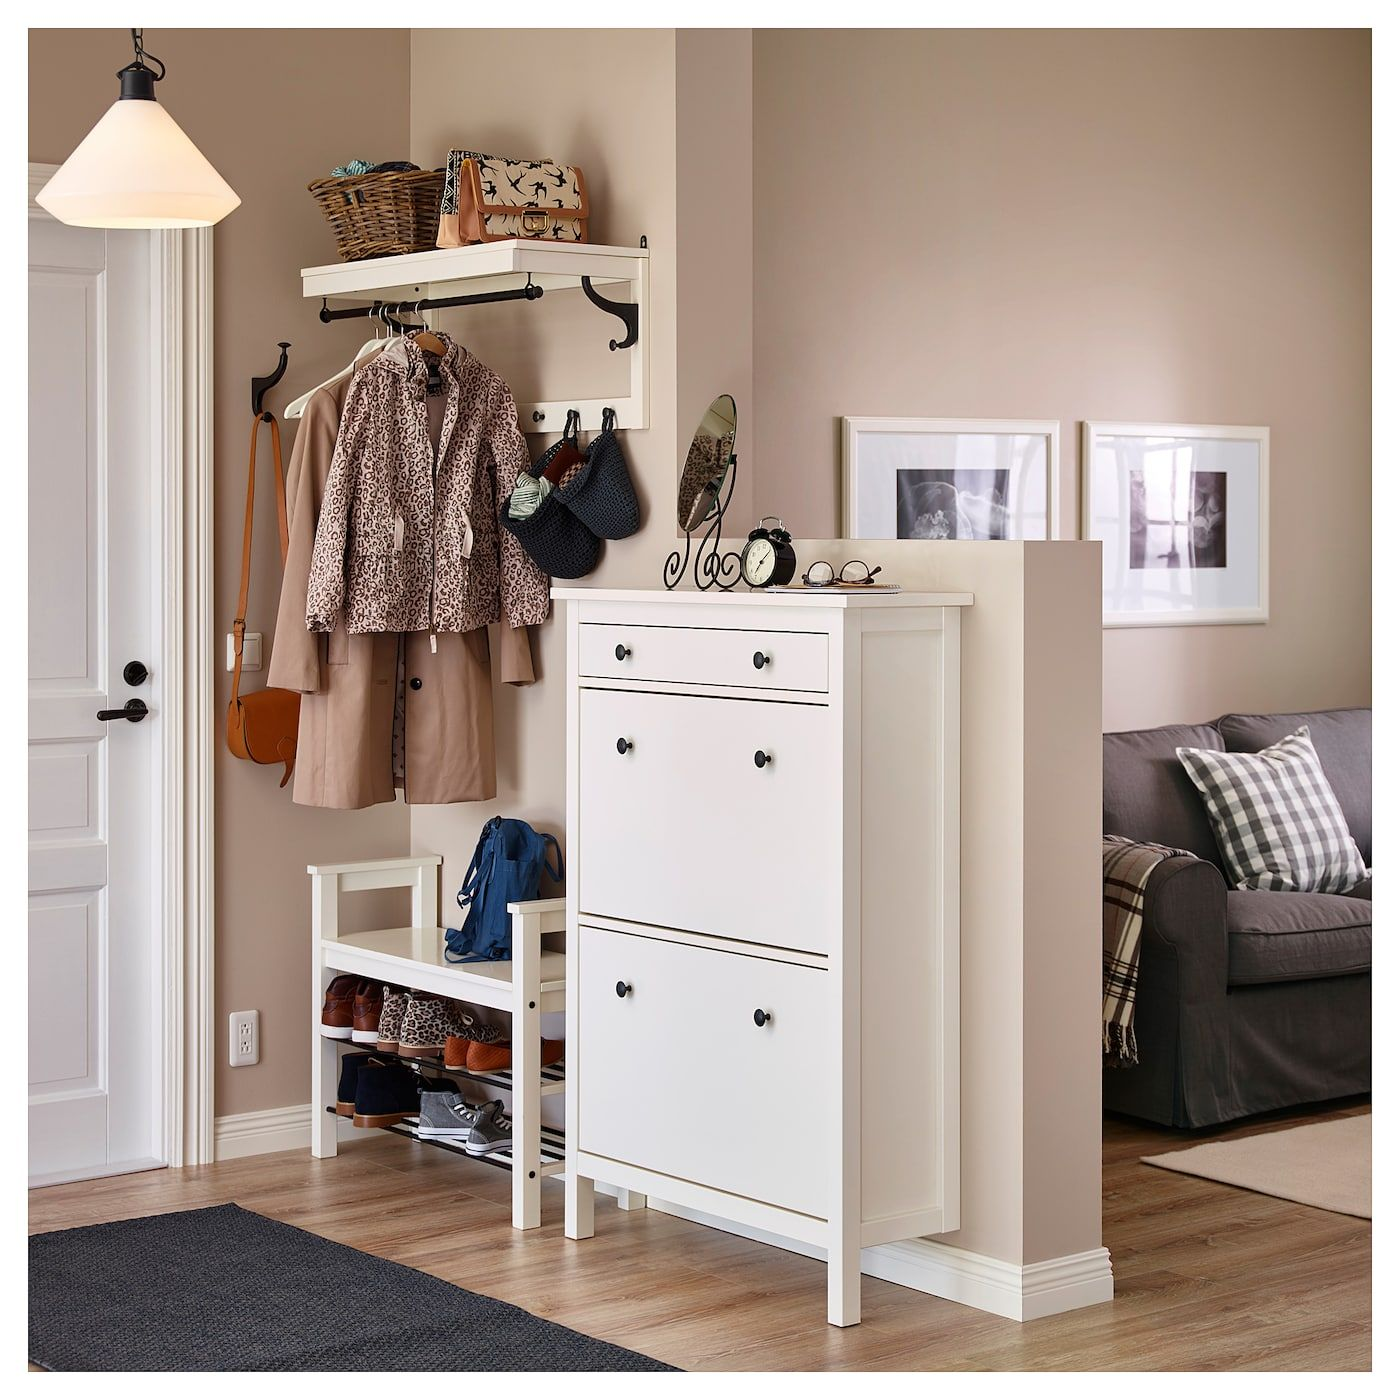 Ikea Hemnes White Shoe Cabinet With 2 Compartments Hallway Shoe